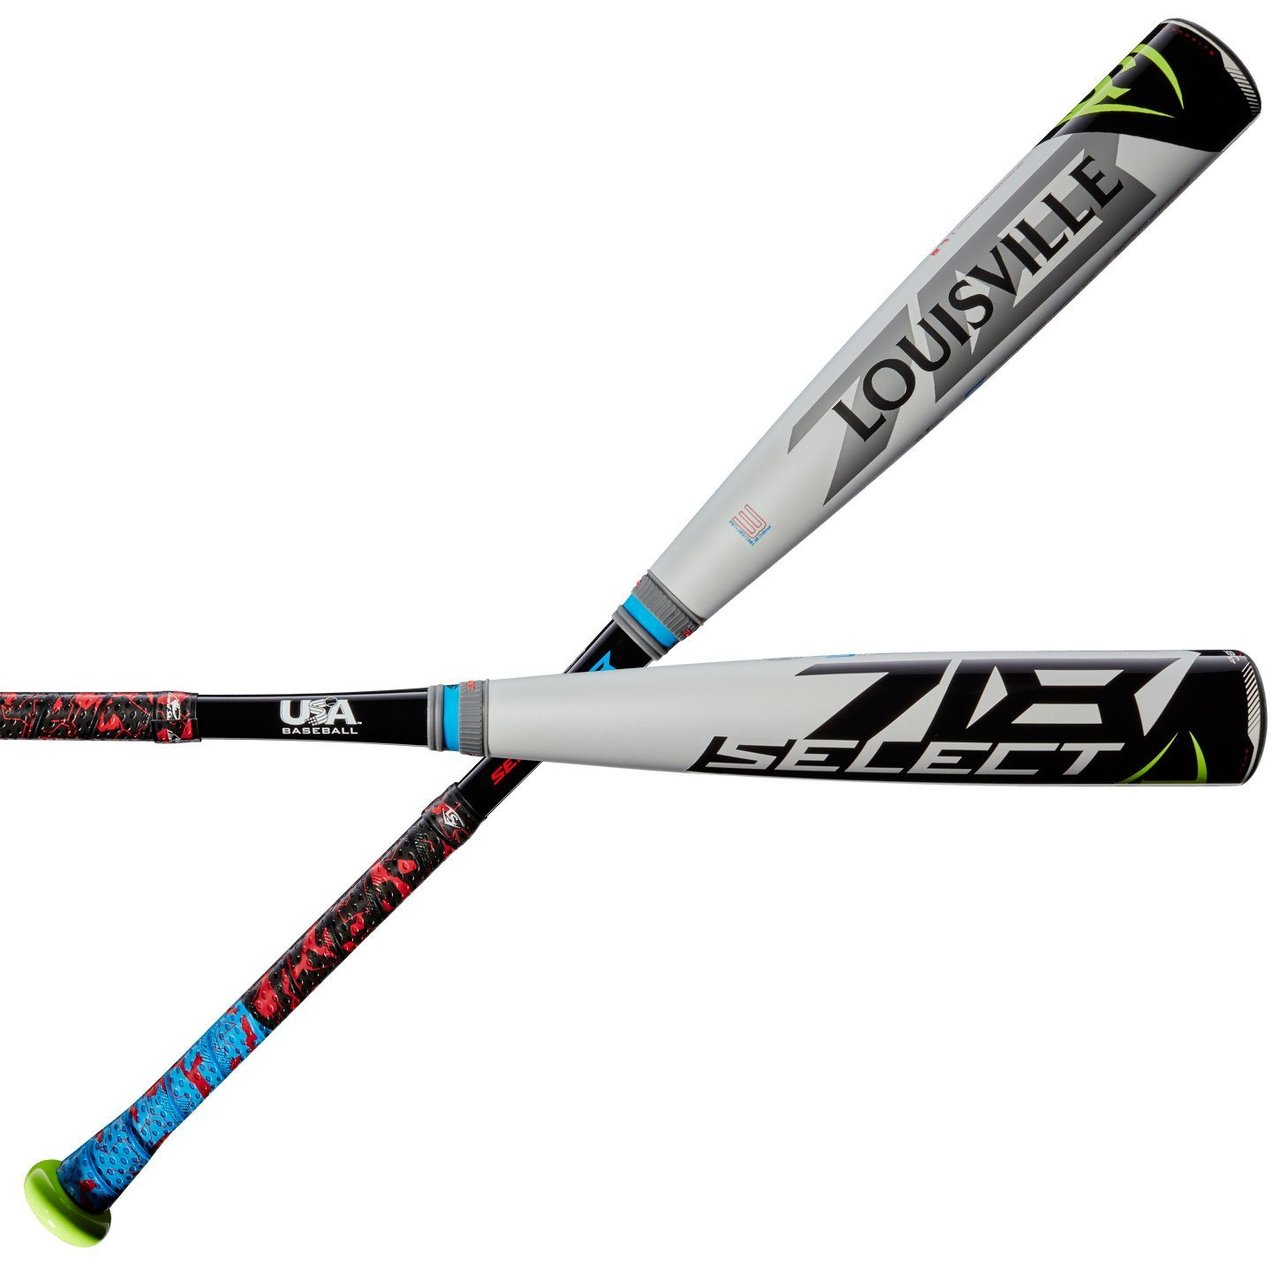 louisville-slugger-select-718-usa-5-wtlubs718b5-youth-baseball-bat-30-inch-25-oz WTLUBS718B530 Louisville 887768677909 5 length to weight ratio Hybrid construction with ST 7U1+ alloy